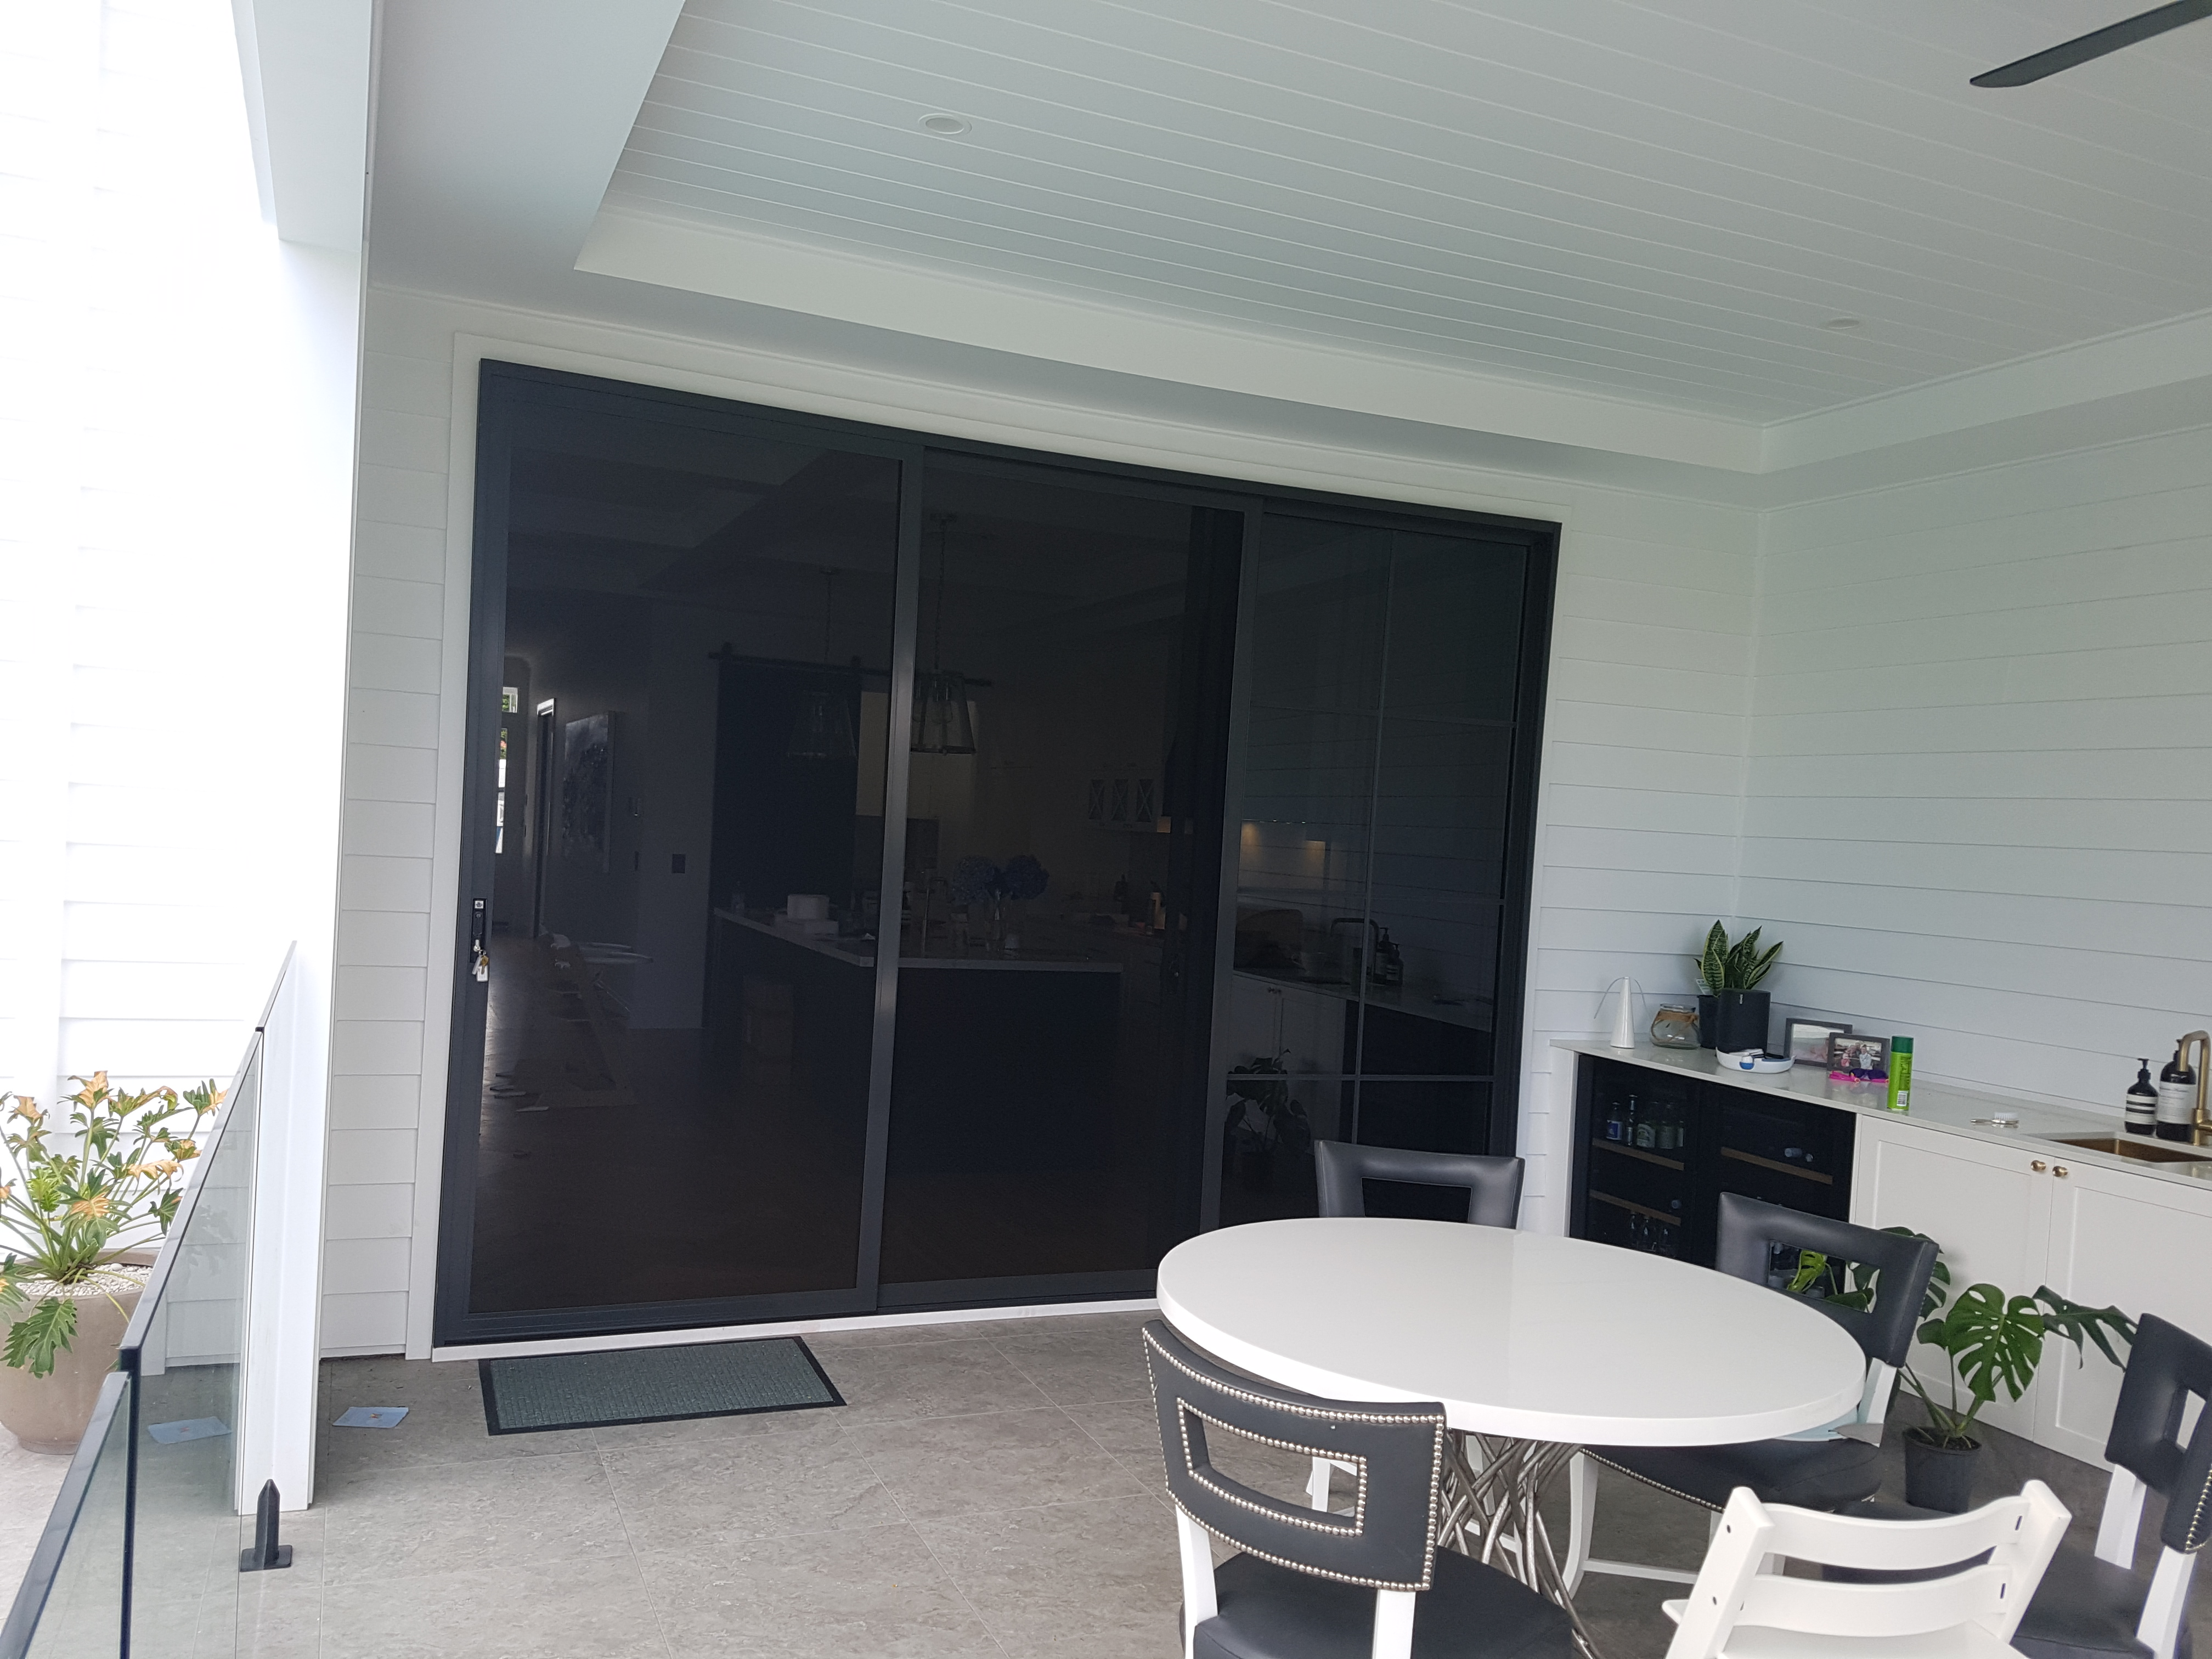 Double sliding doors for the patio area